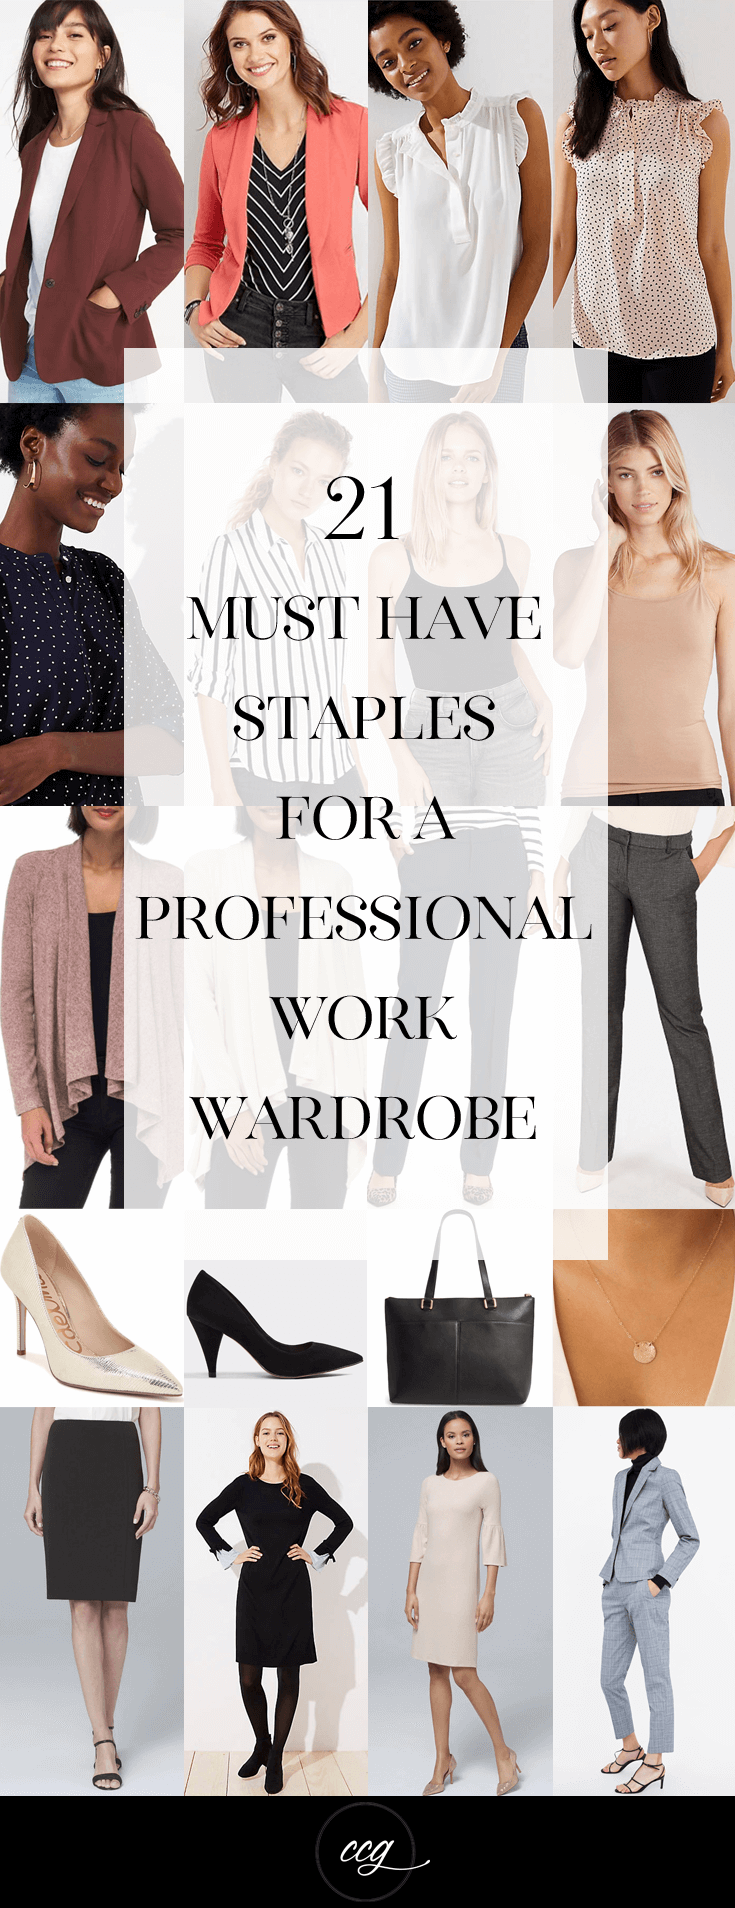 b3207a57af8 21 Must Have Staples For a Professional Wardrobe - Classy Career Girl